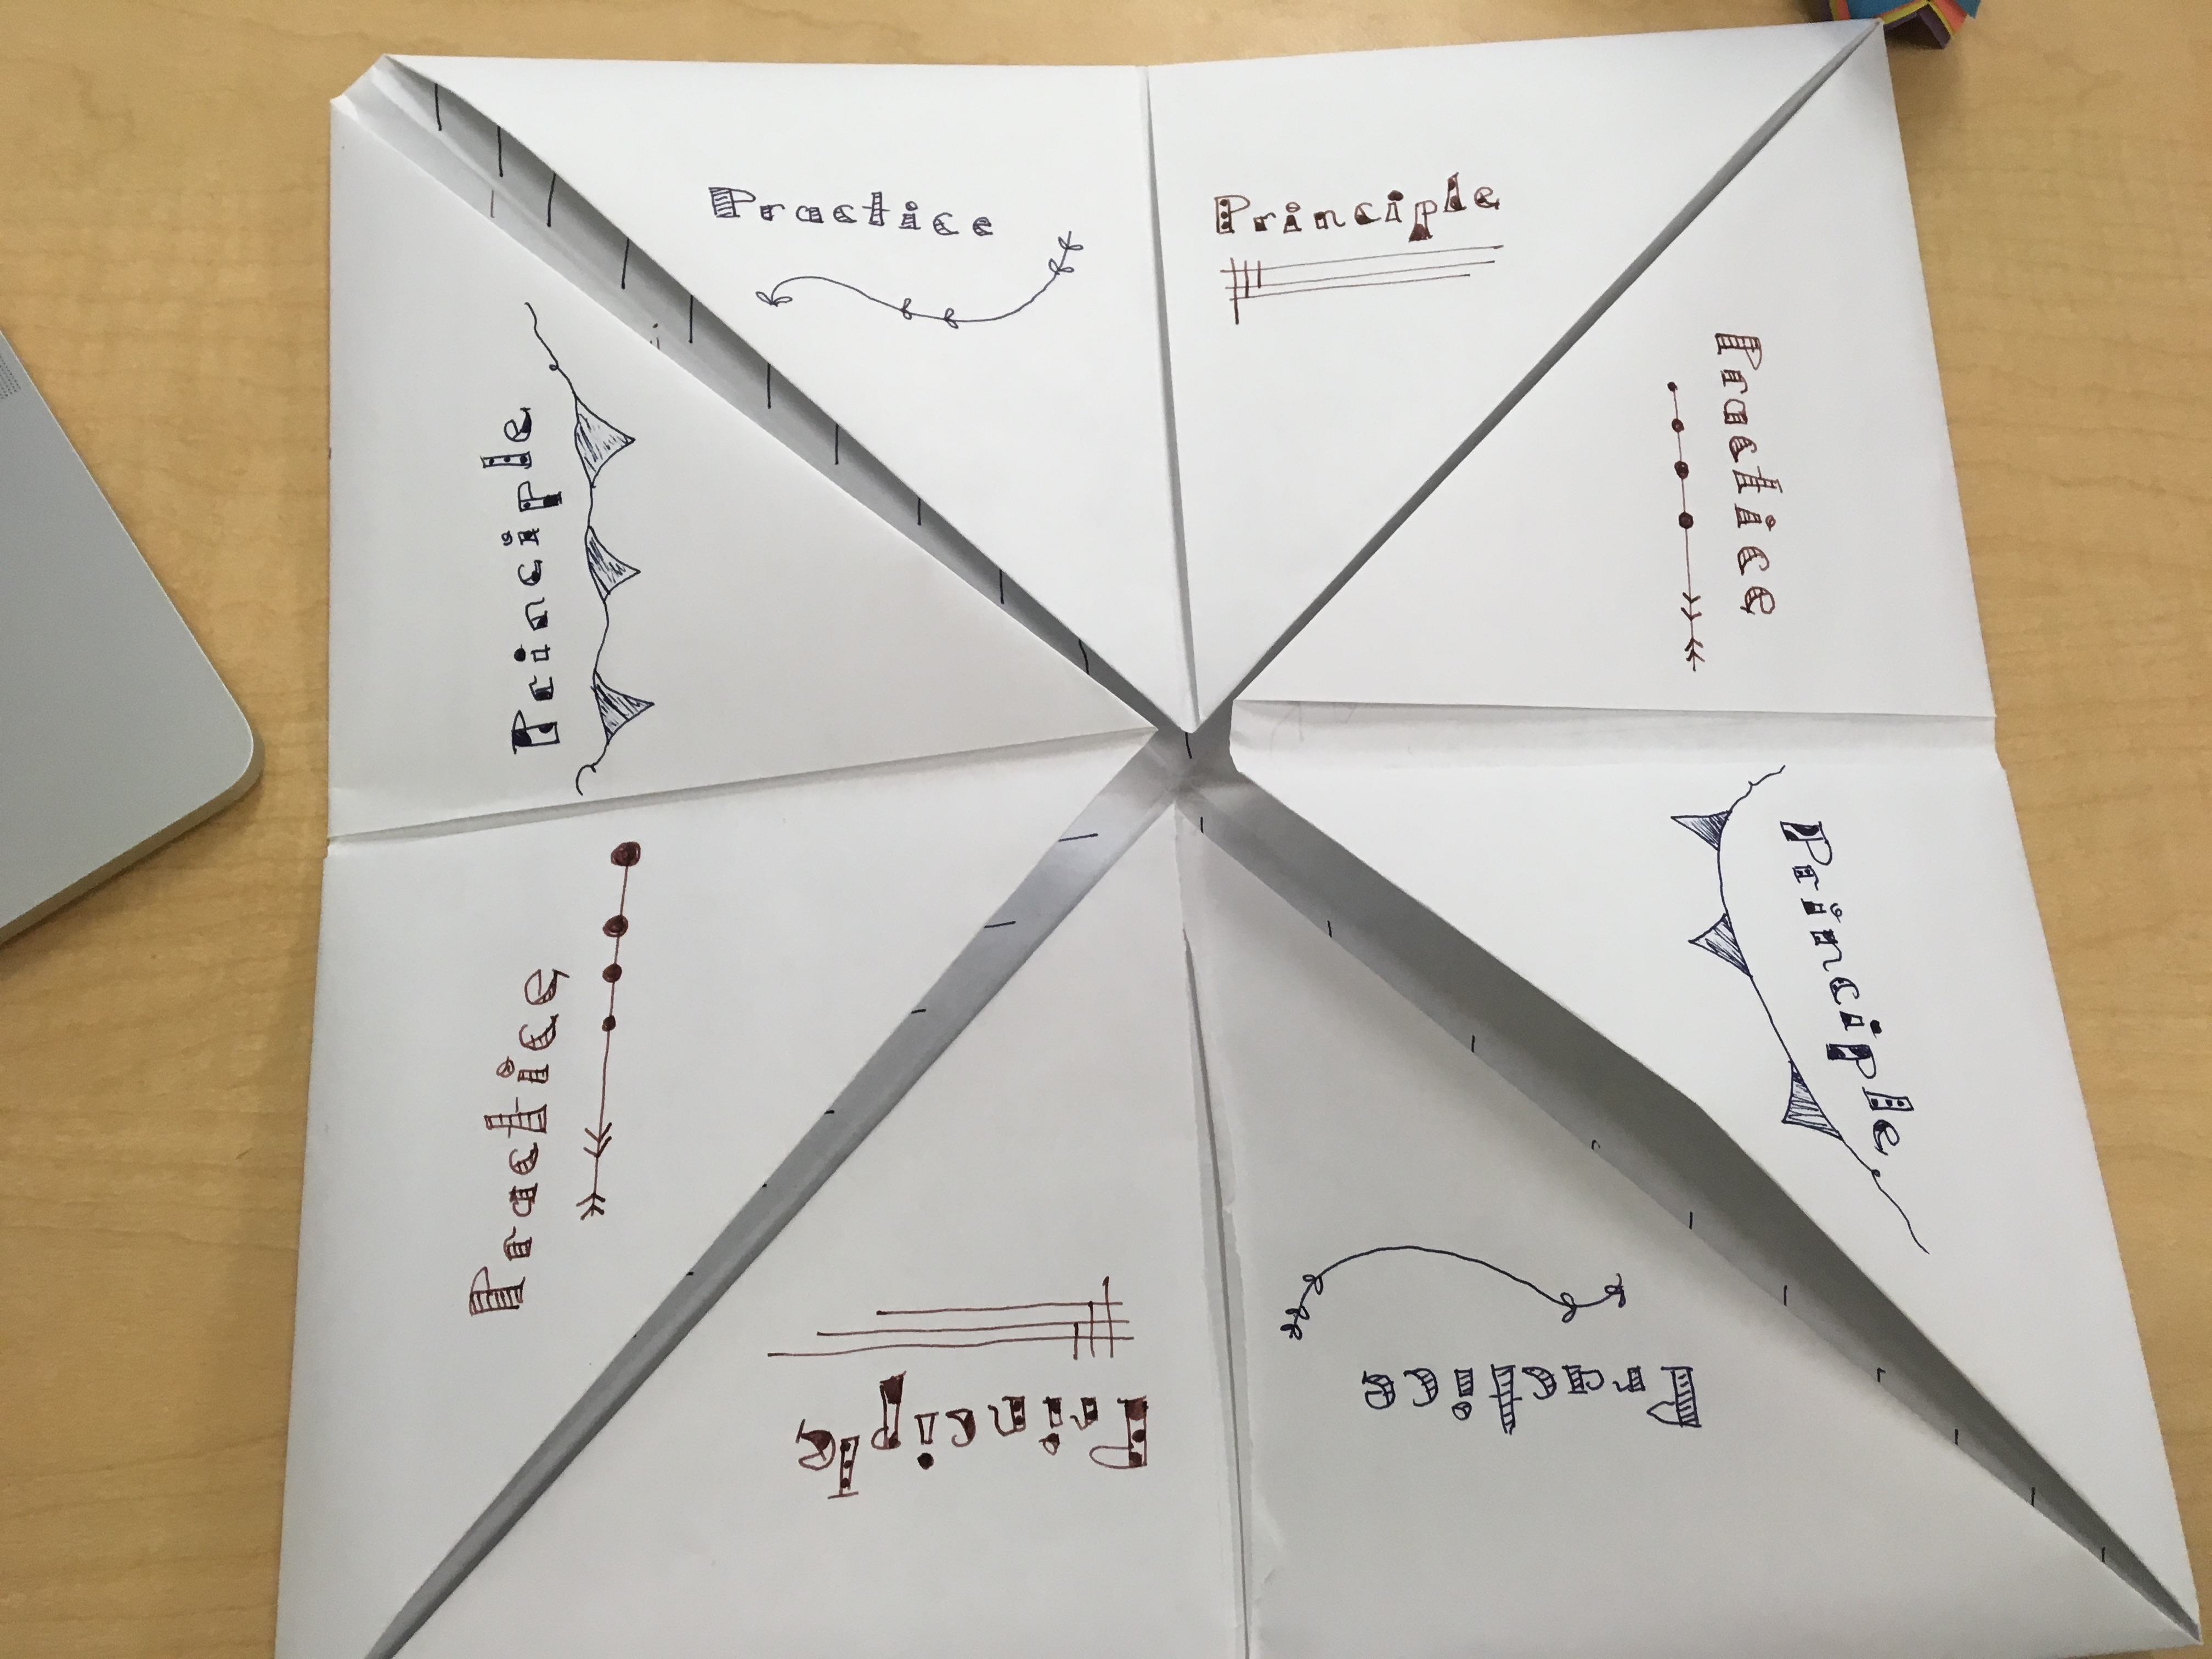 Partially unfolded cootie catcher.